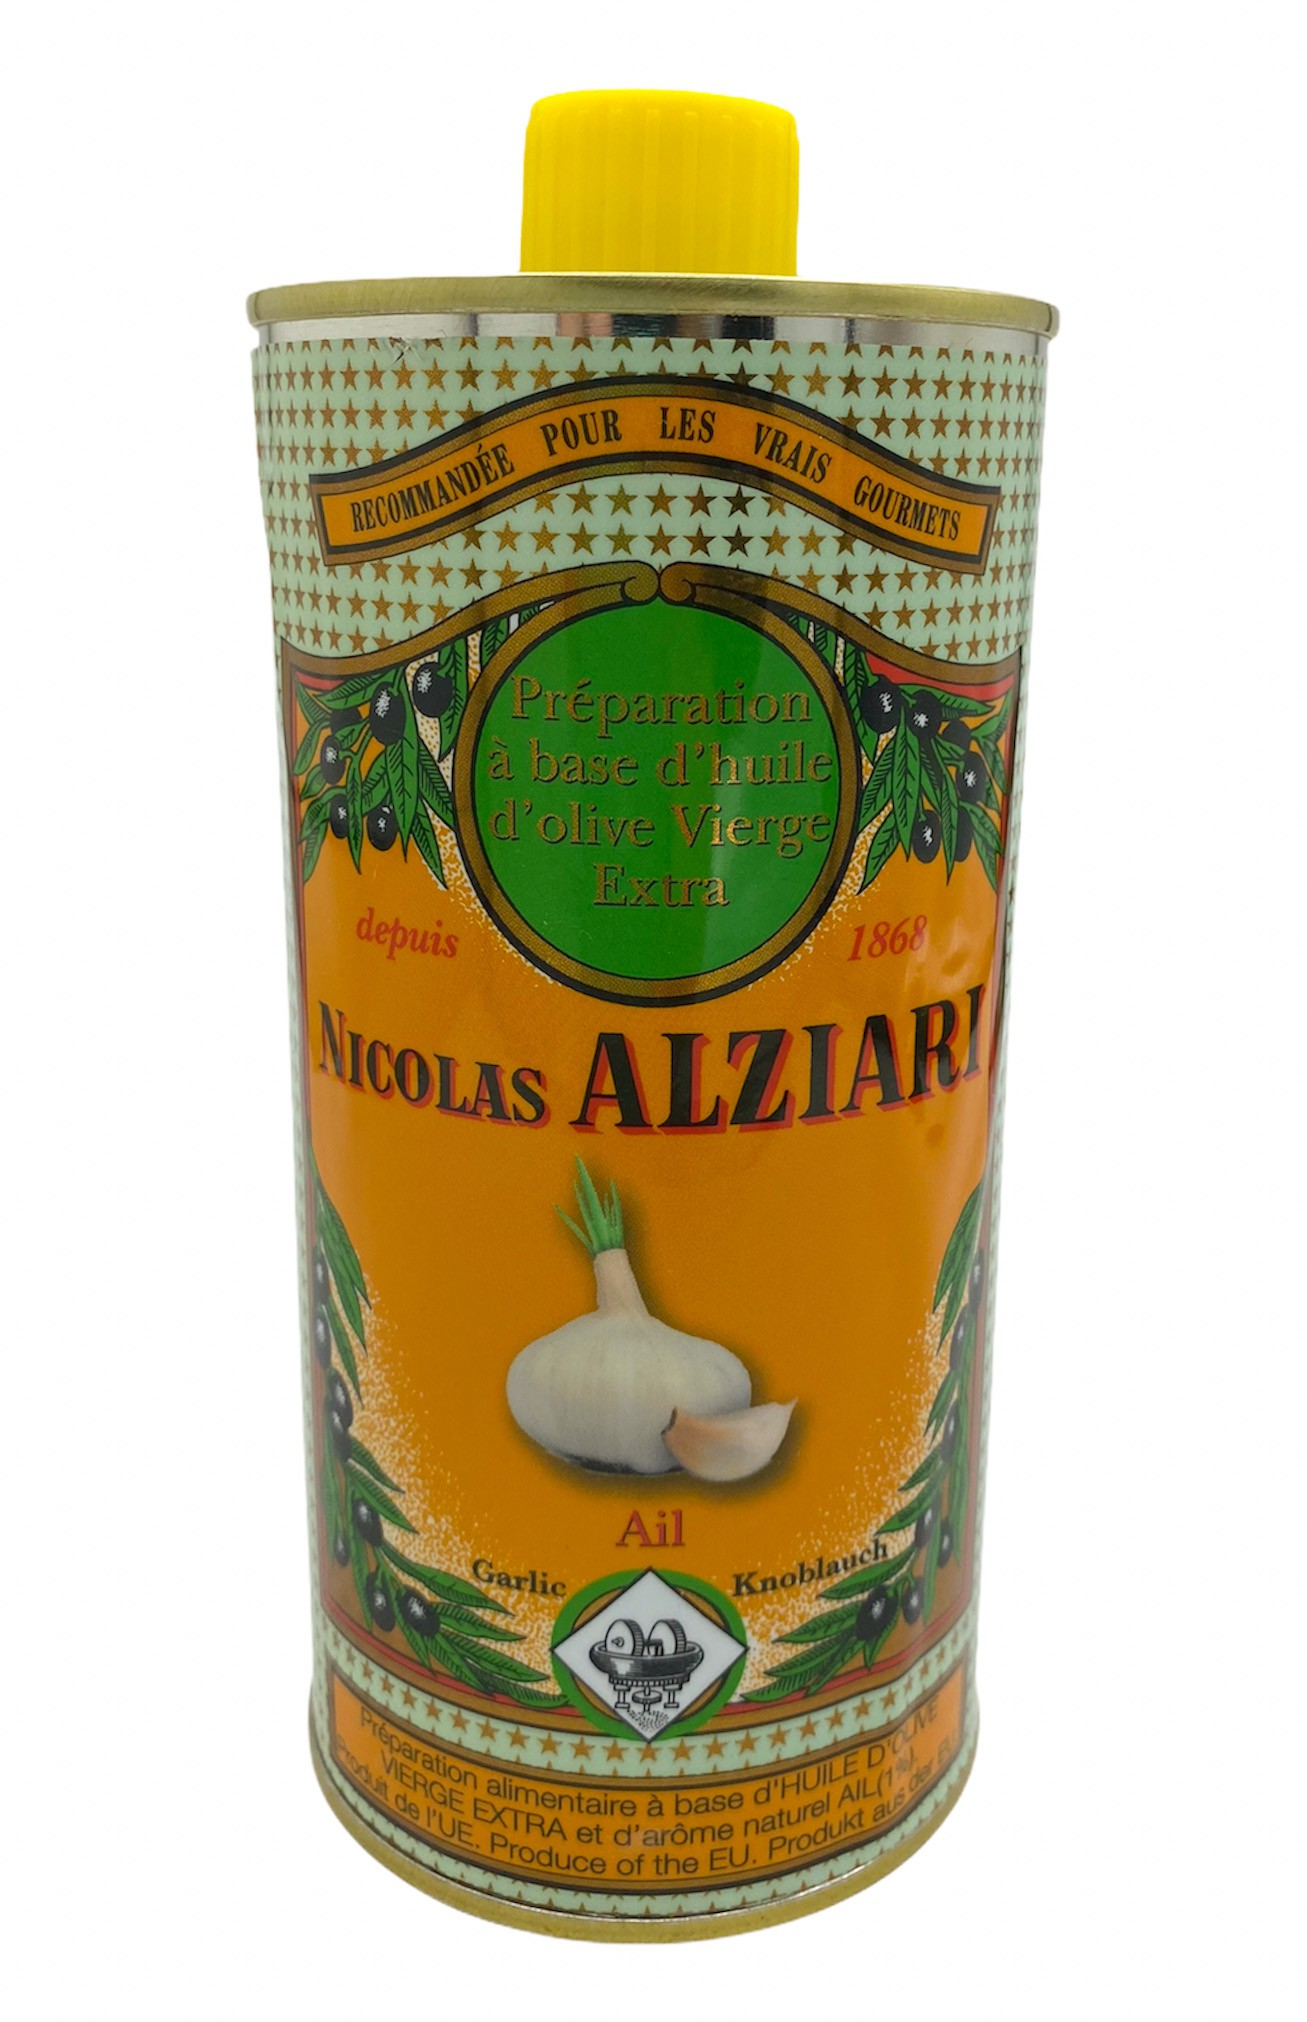 GARLIC - Food preparation based on olive oil and natural GARLIC flavour 500ml